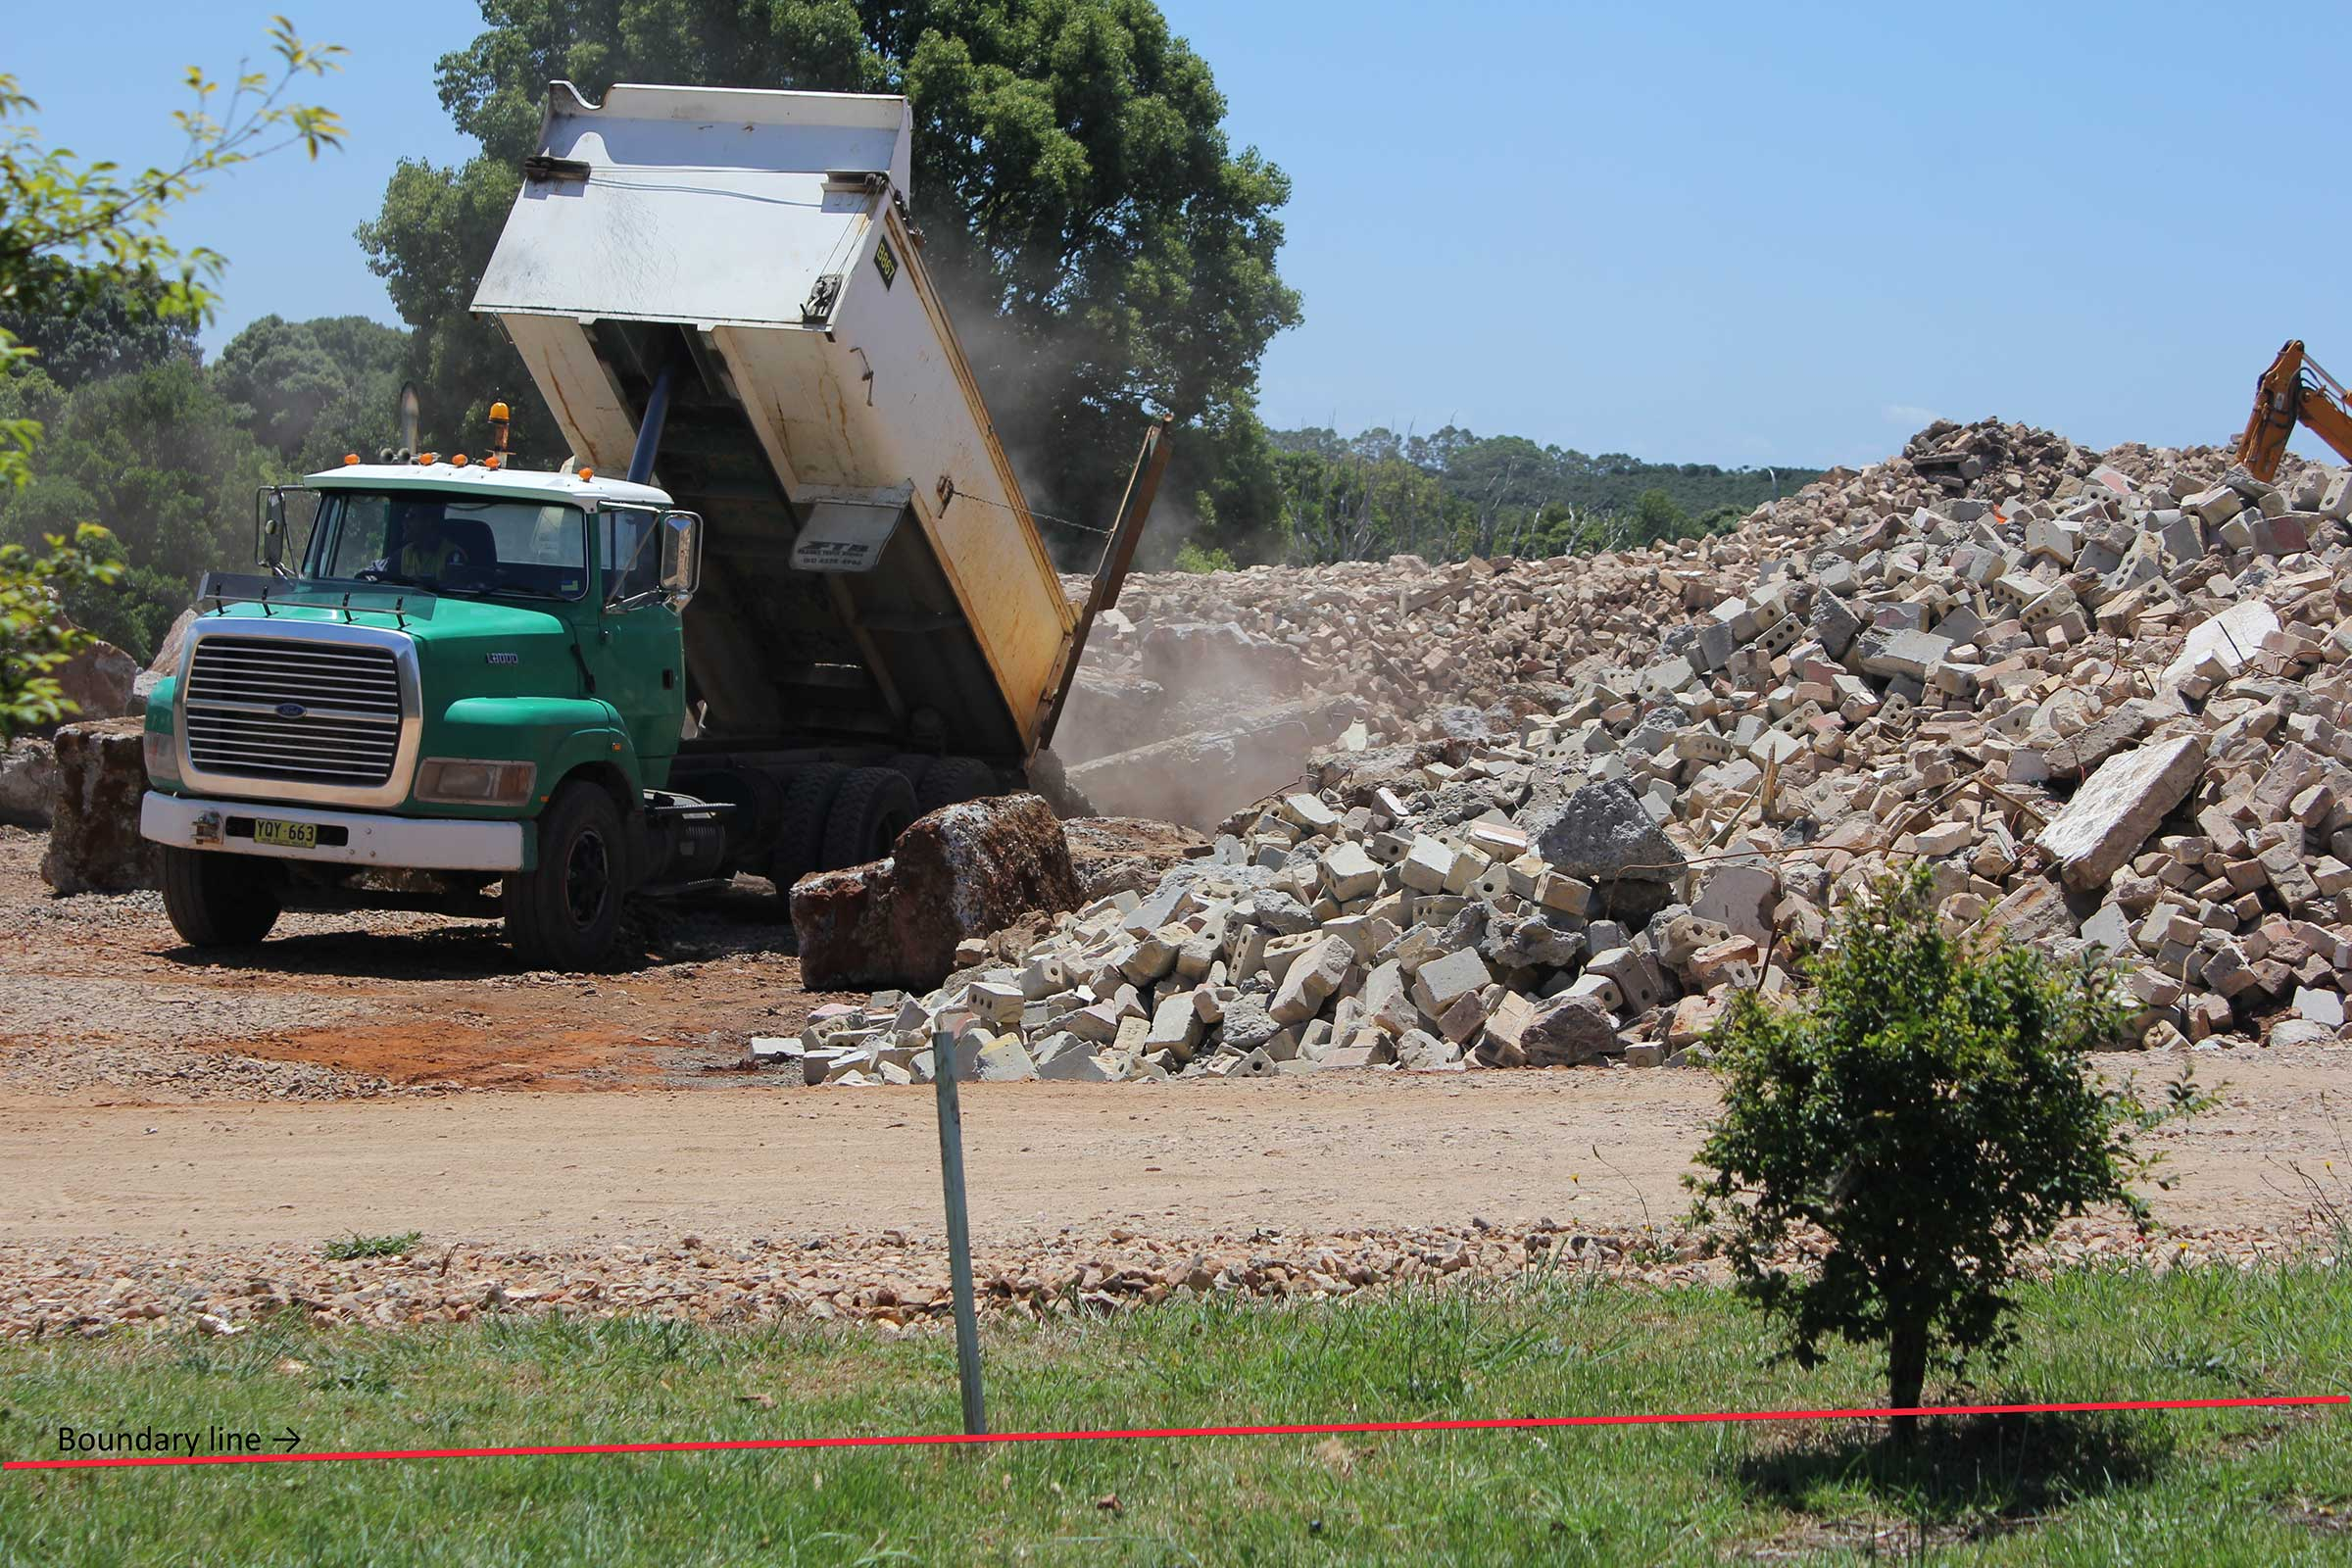 North Coast Recycling under scrutiny for DA breaches and asbestos handling - Echonetdaily